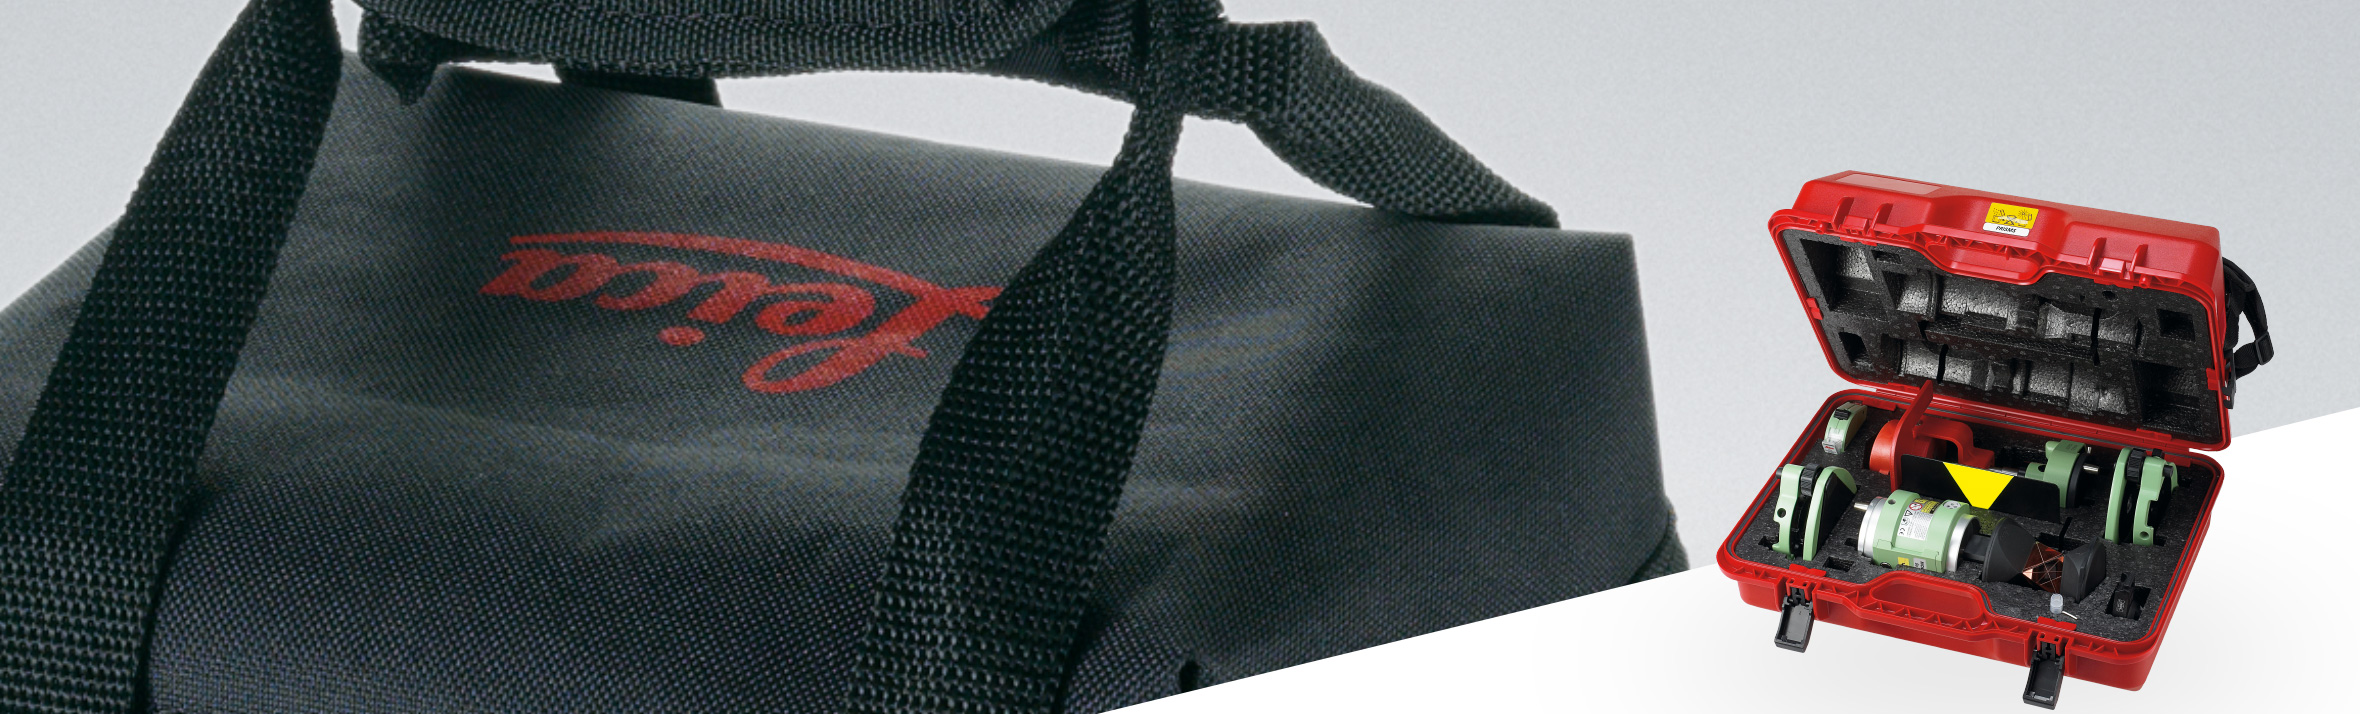 Leica Geosystems Bags & Containers